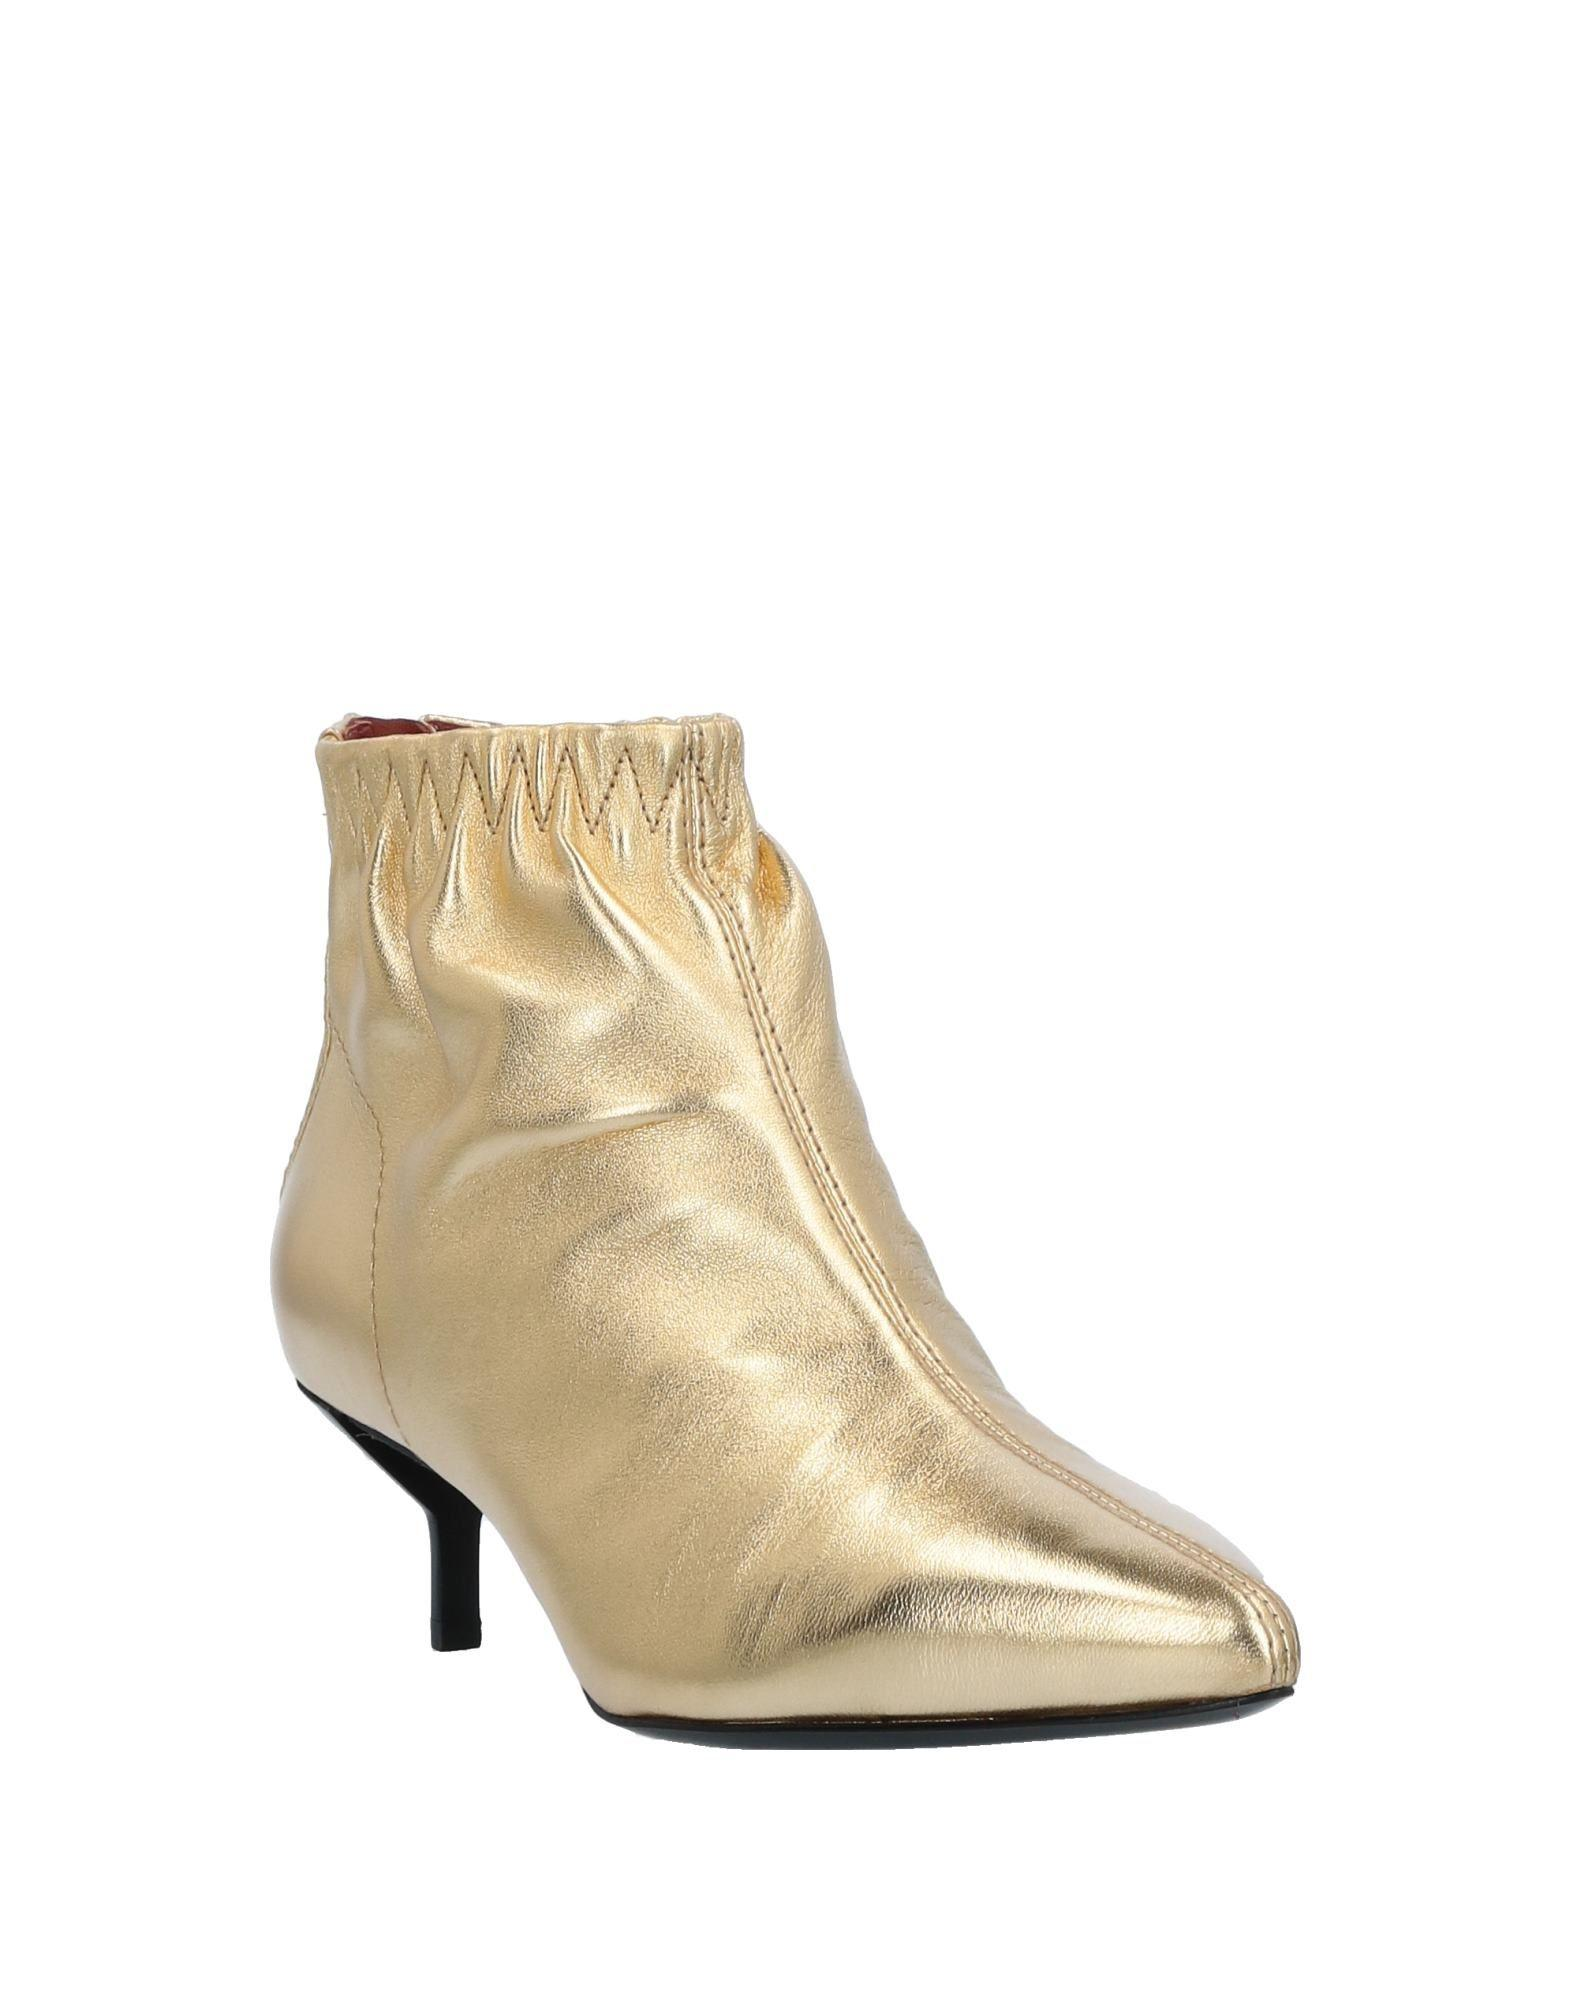 3.1 Phillip Lim Leather Ankle Boots in Gold (Metallic)